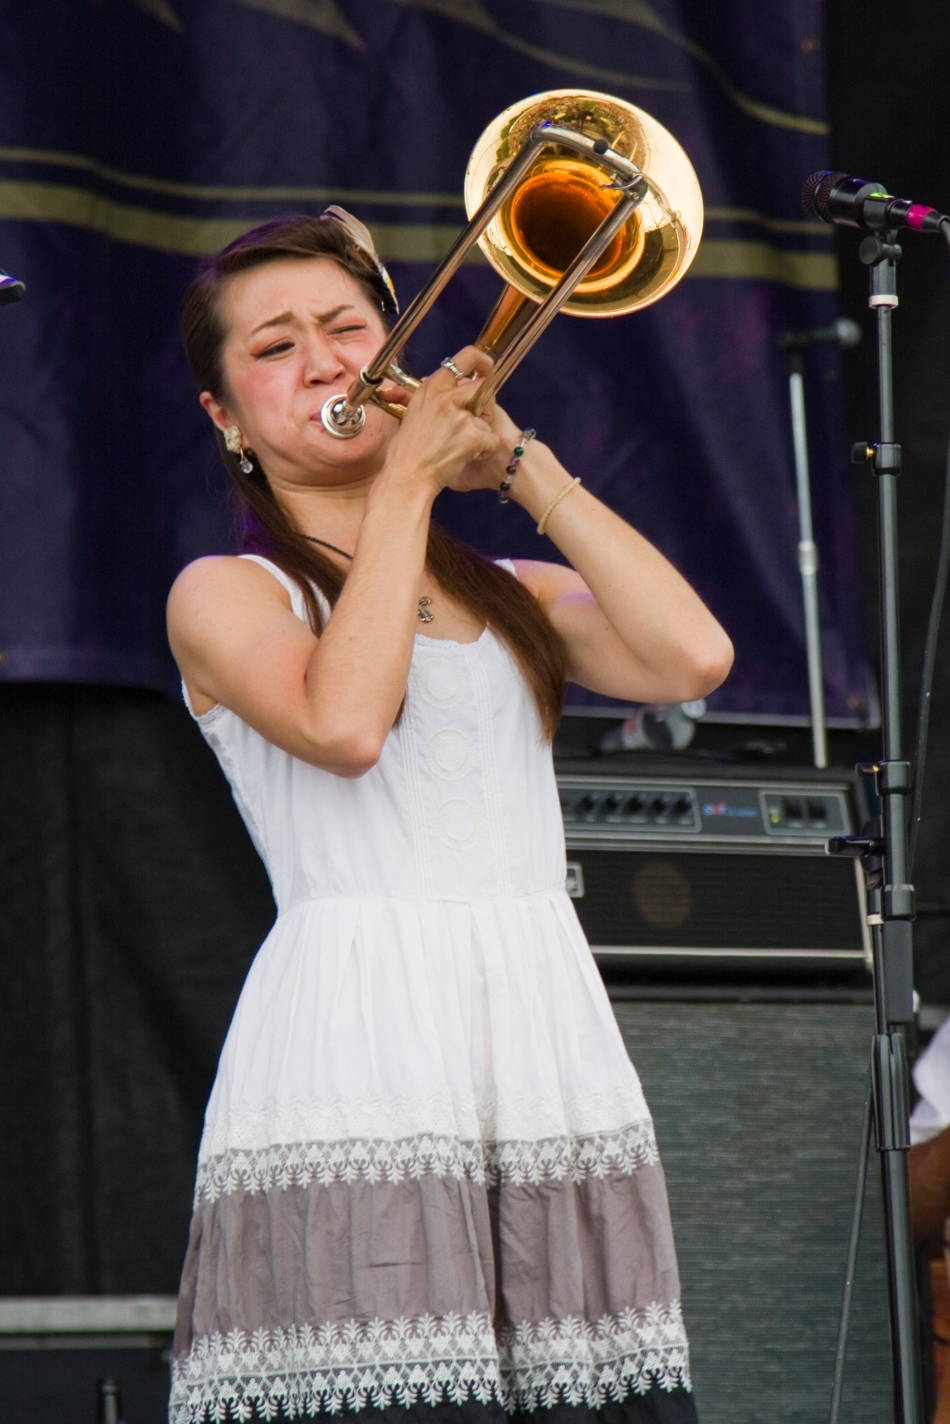 Trombonist Haruka Kikichi performing at French Quarter Fest 2015 in New Orleans, LA. Photo by Braden Piper bgpiperphotography.com